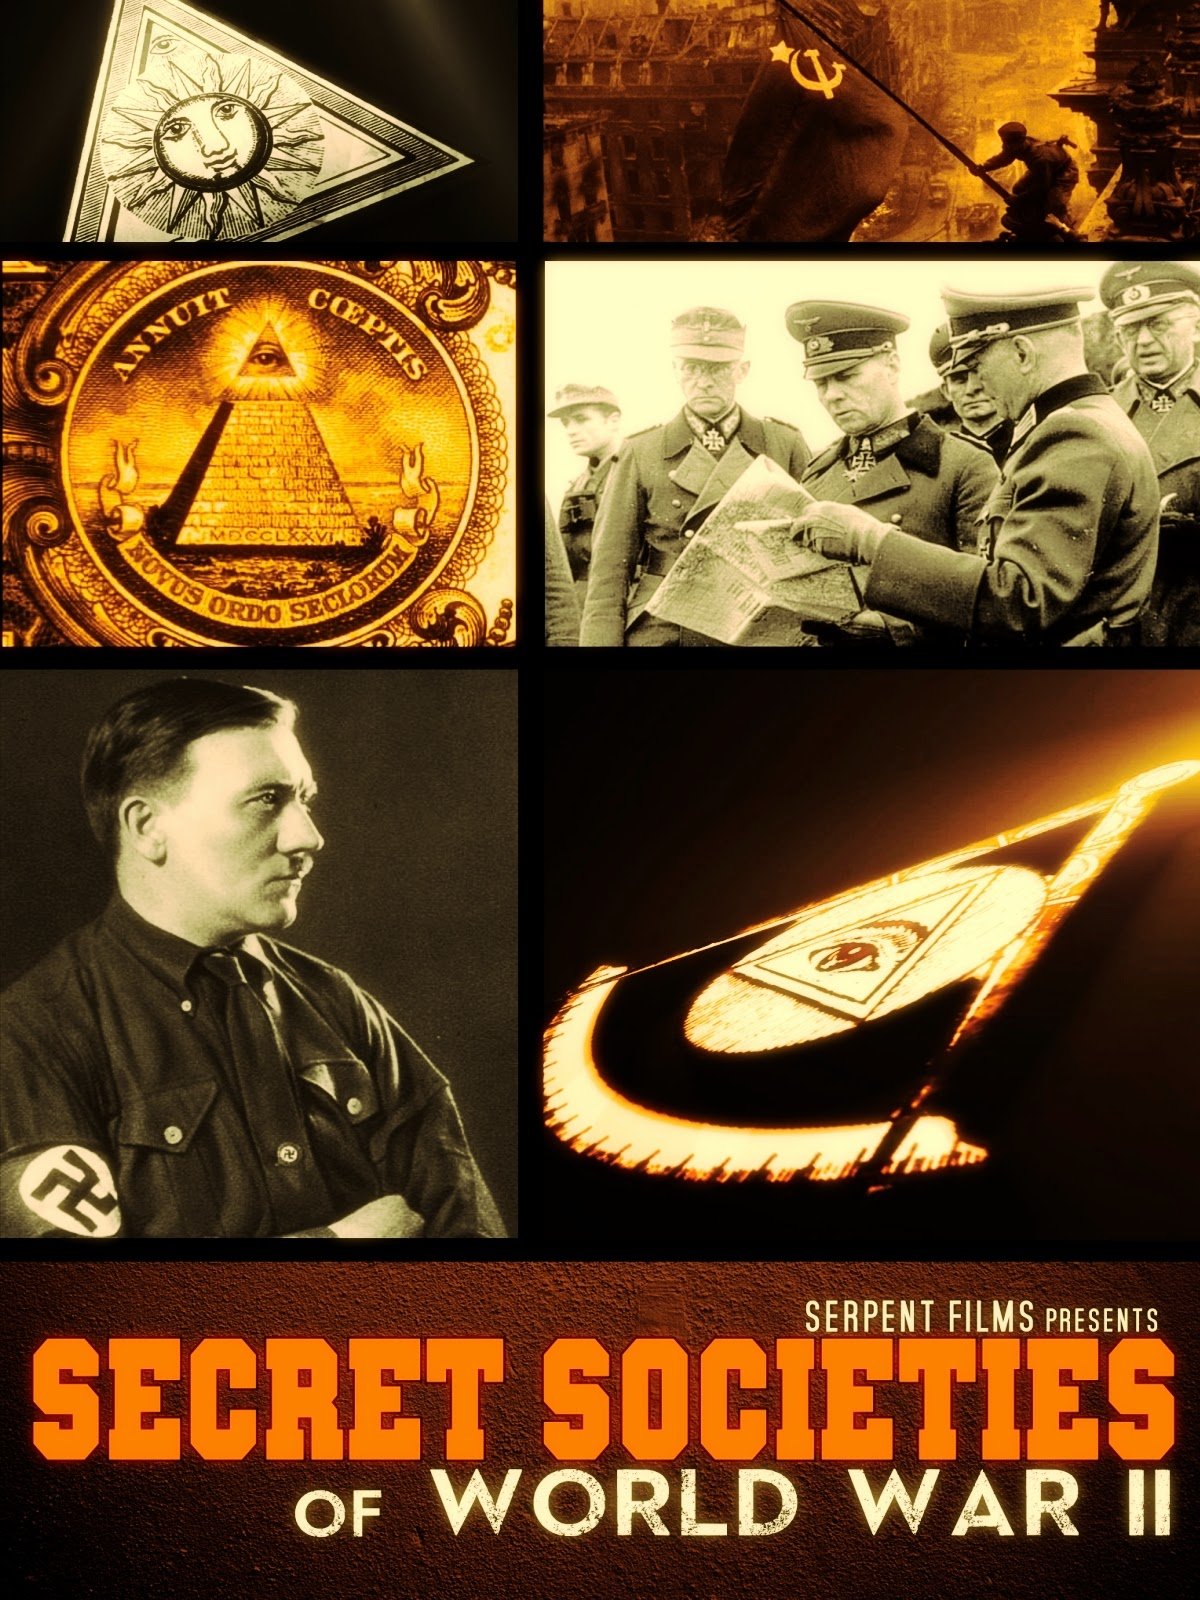 http://serpentfilms.blogspot.co.uk/p/secret-societies-of-wwii.html